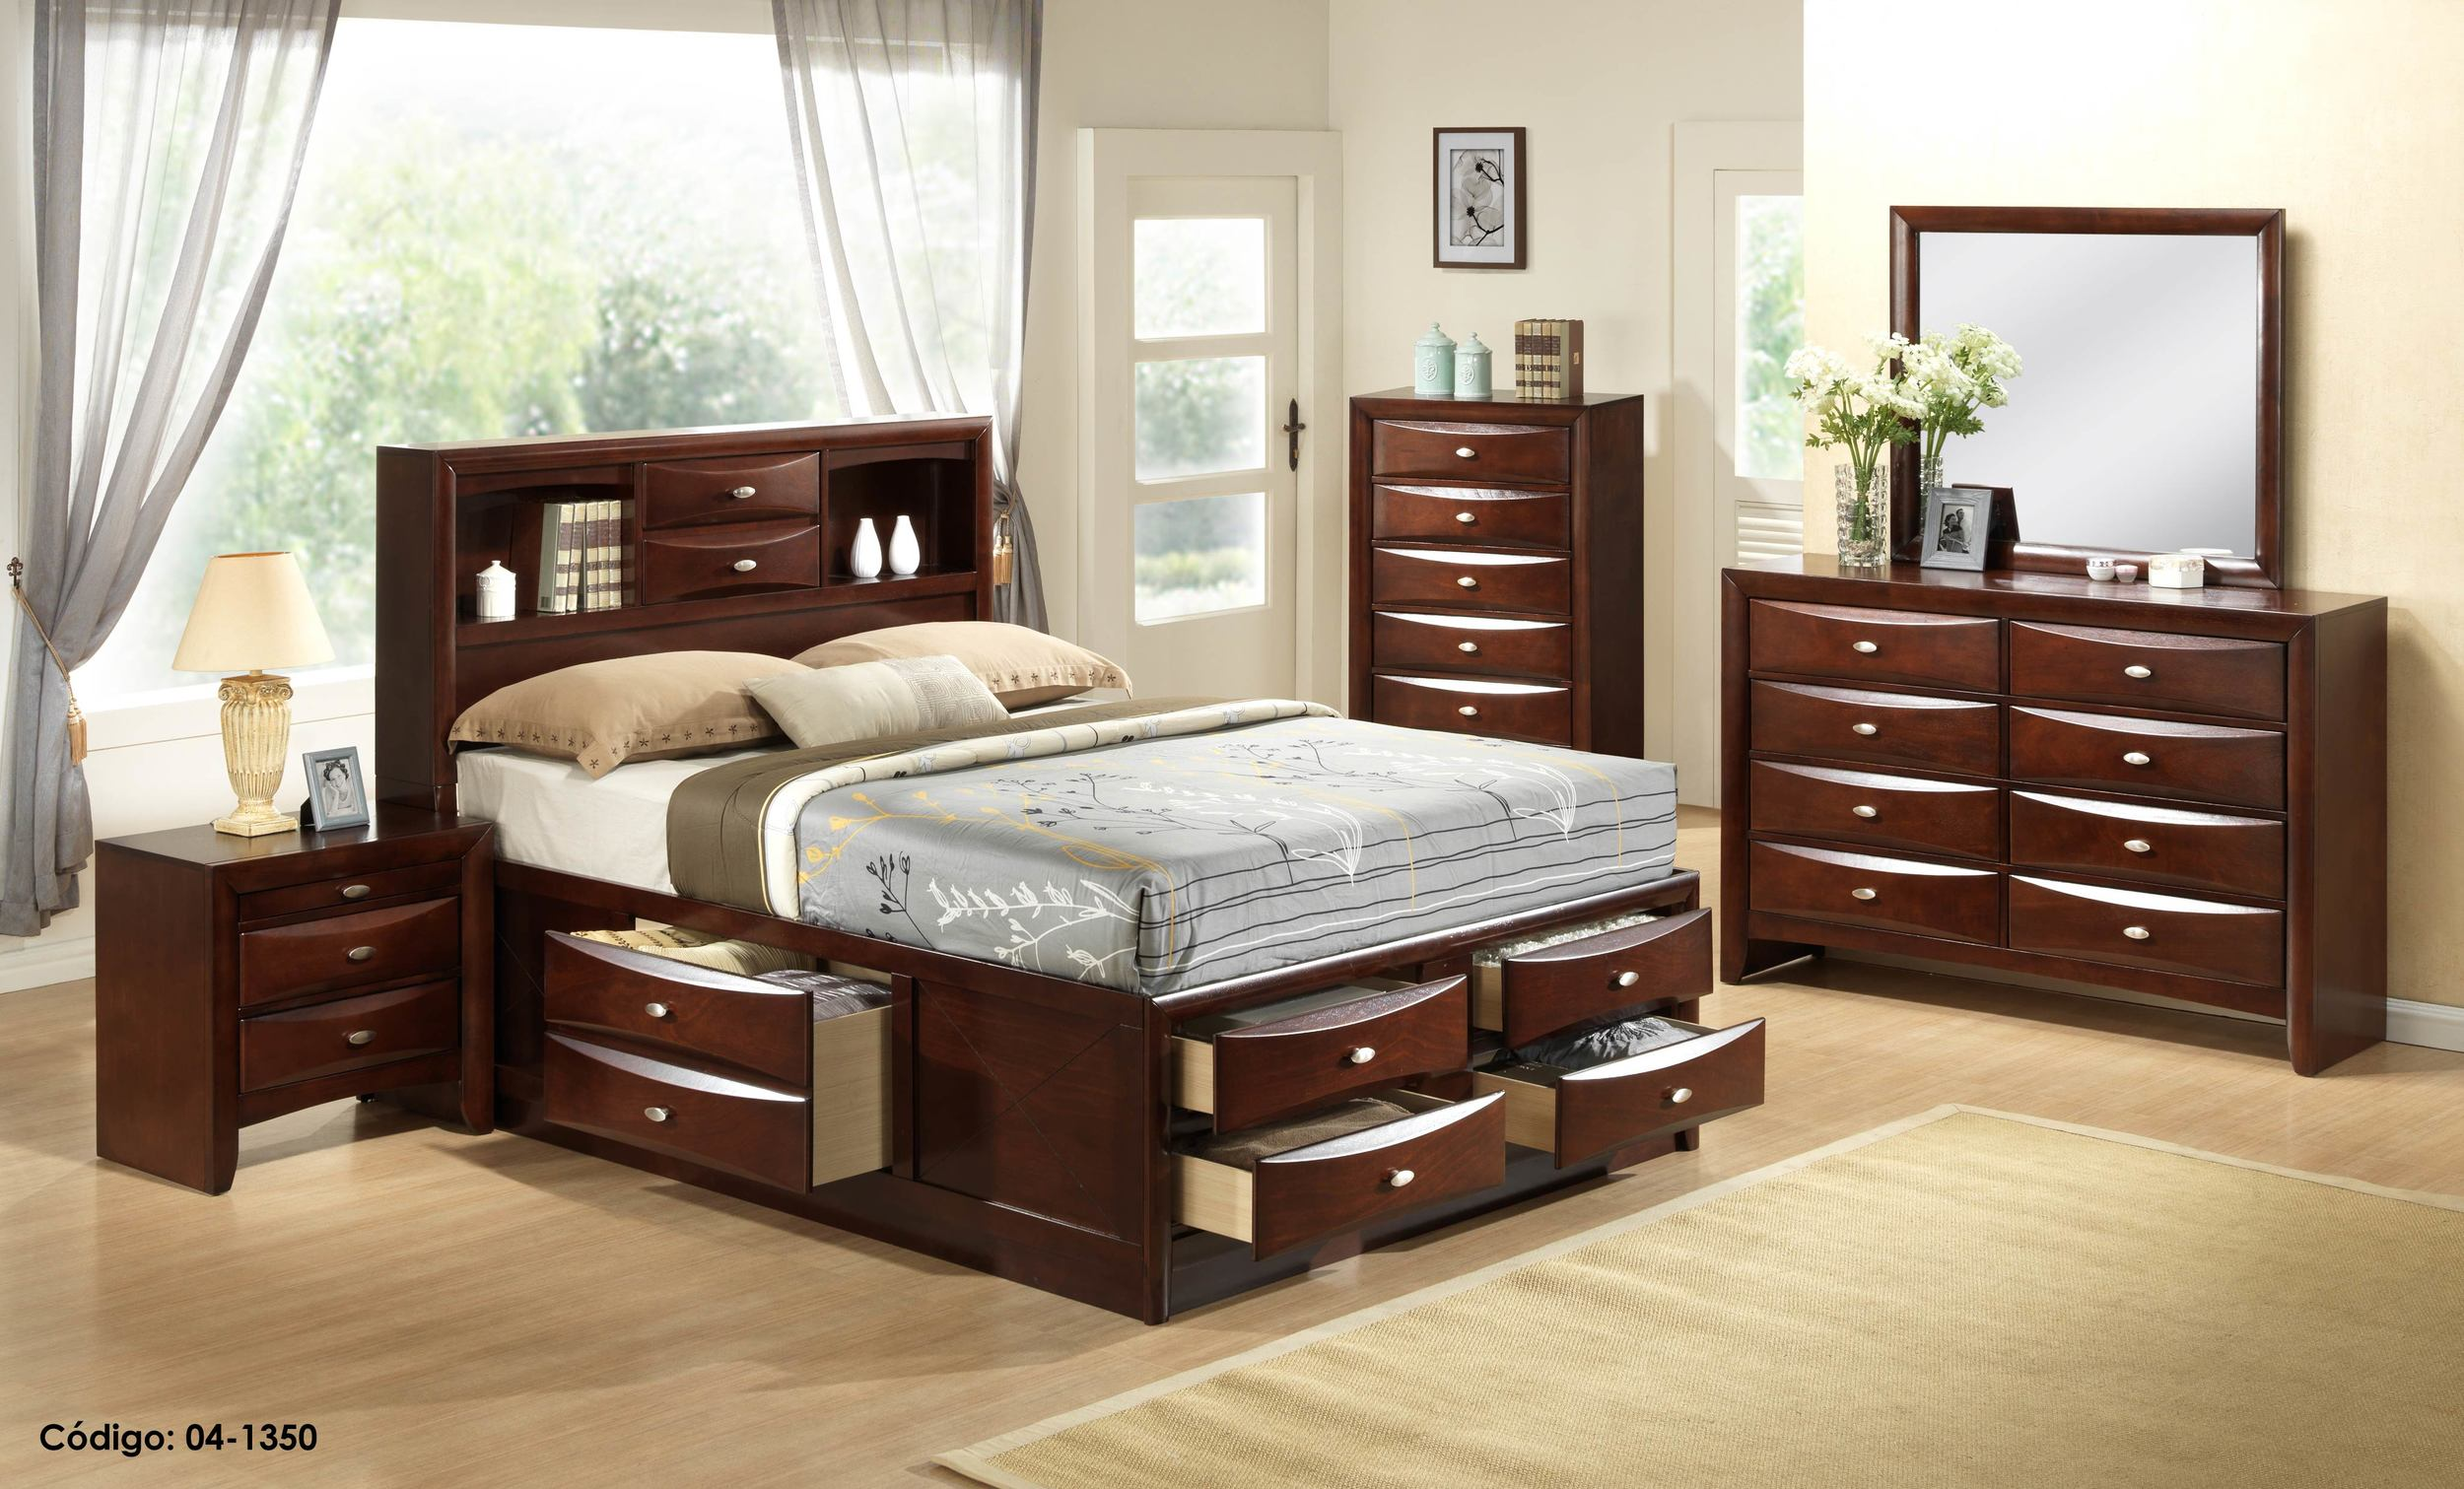 0016I Bed+0011B CG-Ex05-New Merlot WITH OVAL HANDLE HRES2.jpg